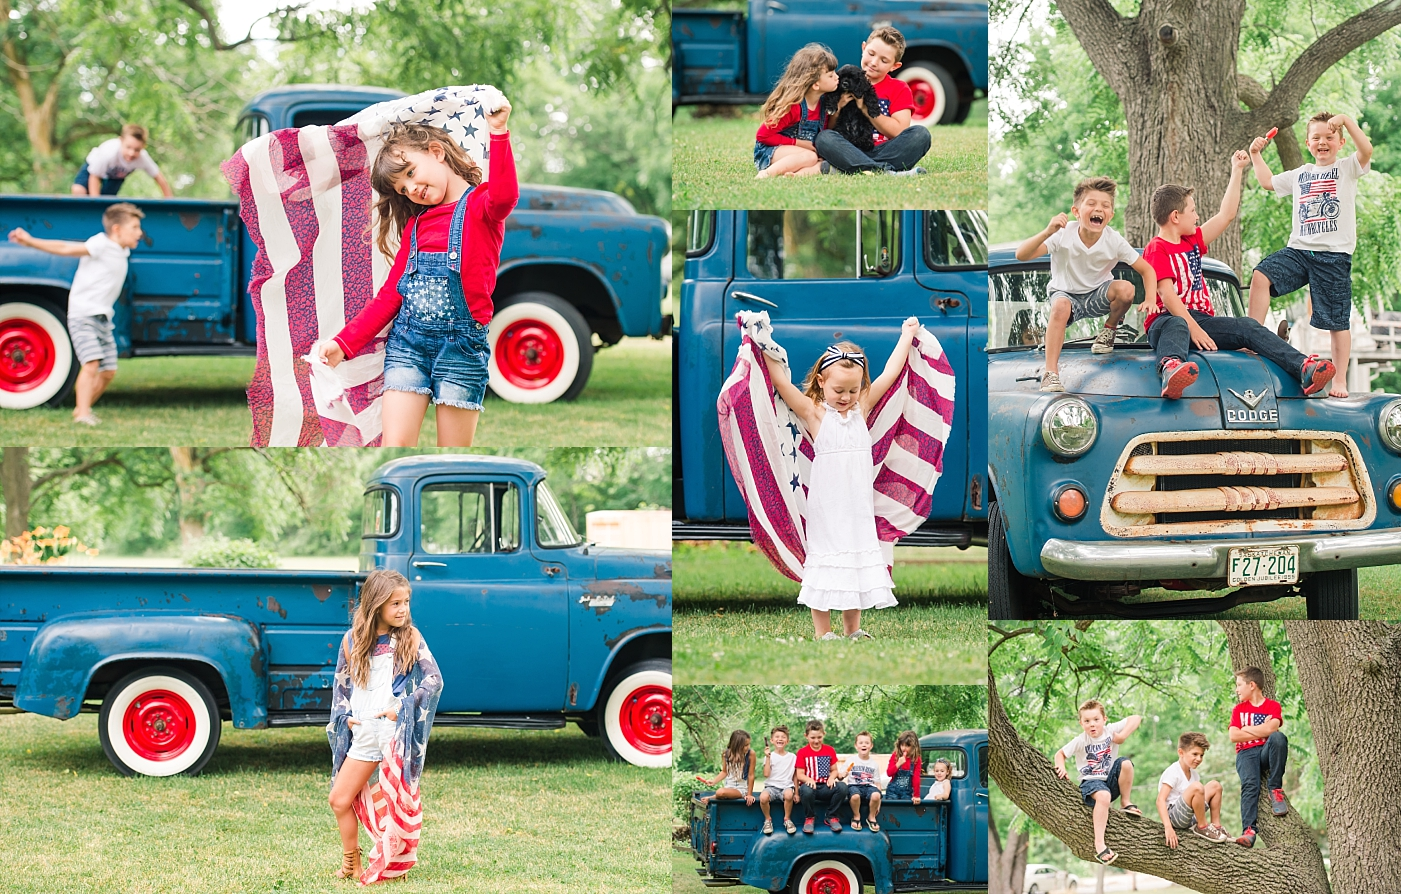 Fun play date and photo shoot with our children for the 4th of July. This time Charlyn's kids joined the party!